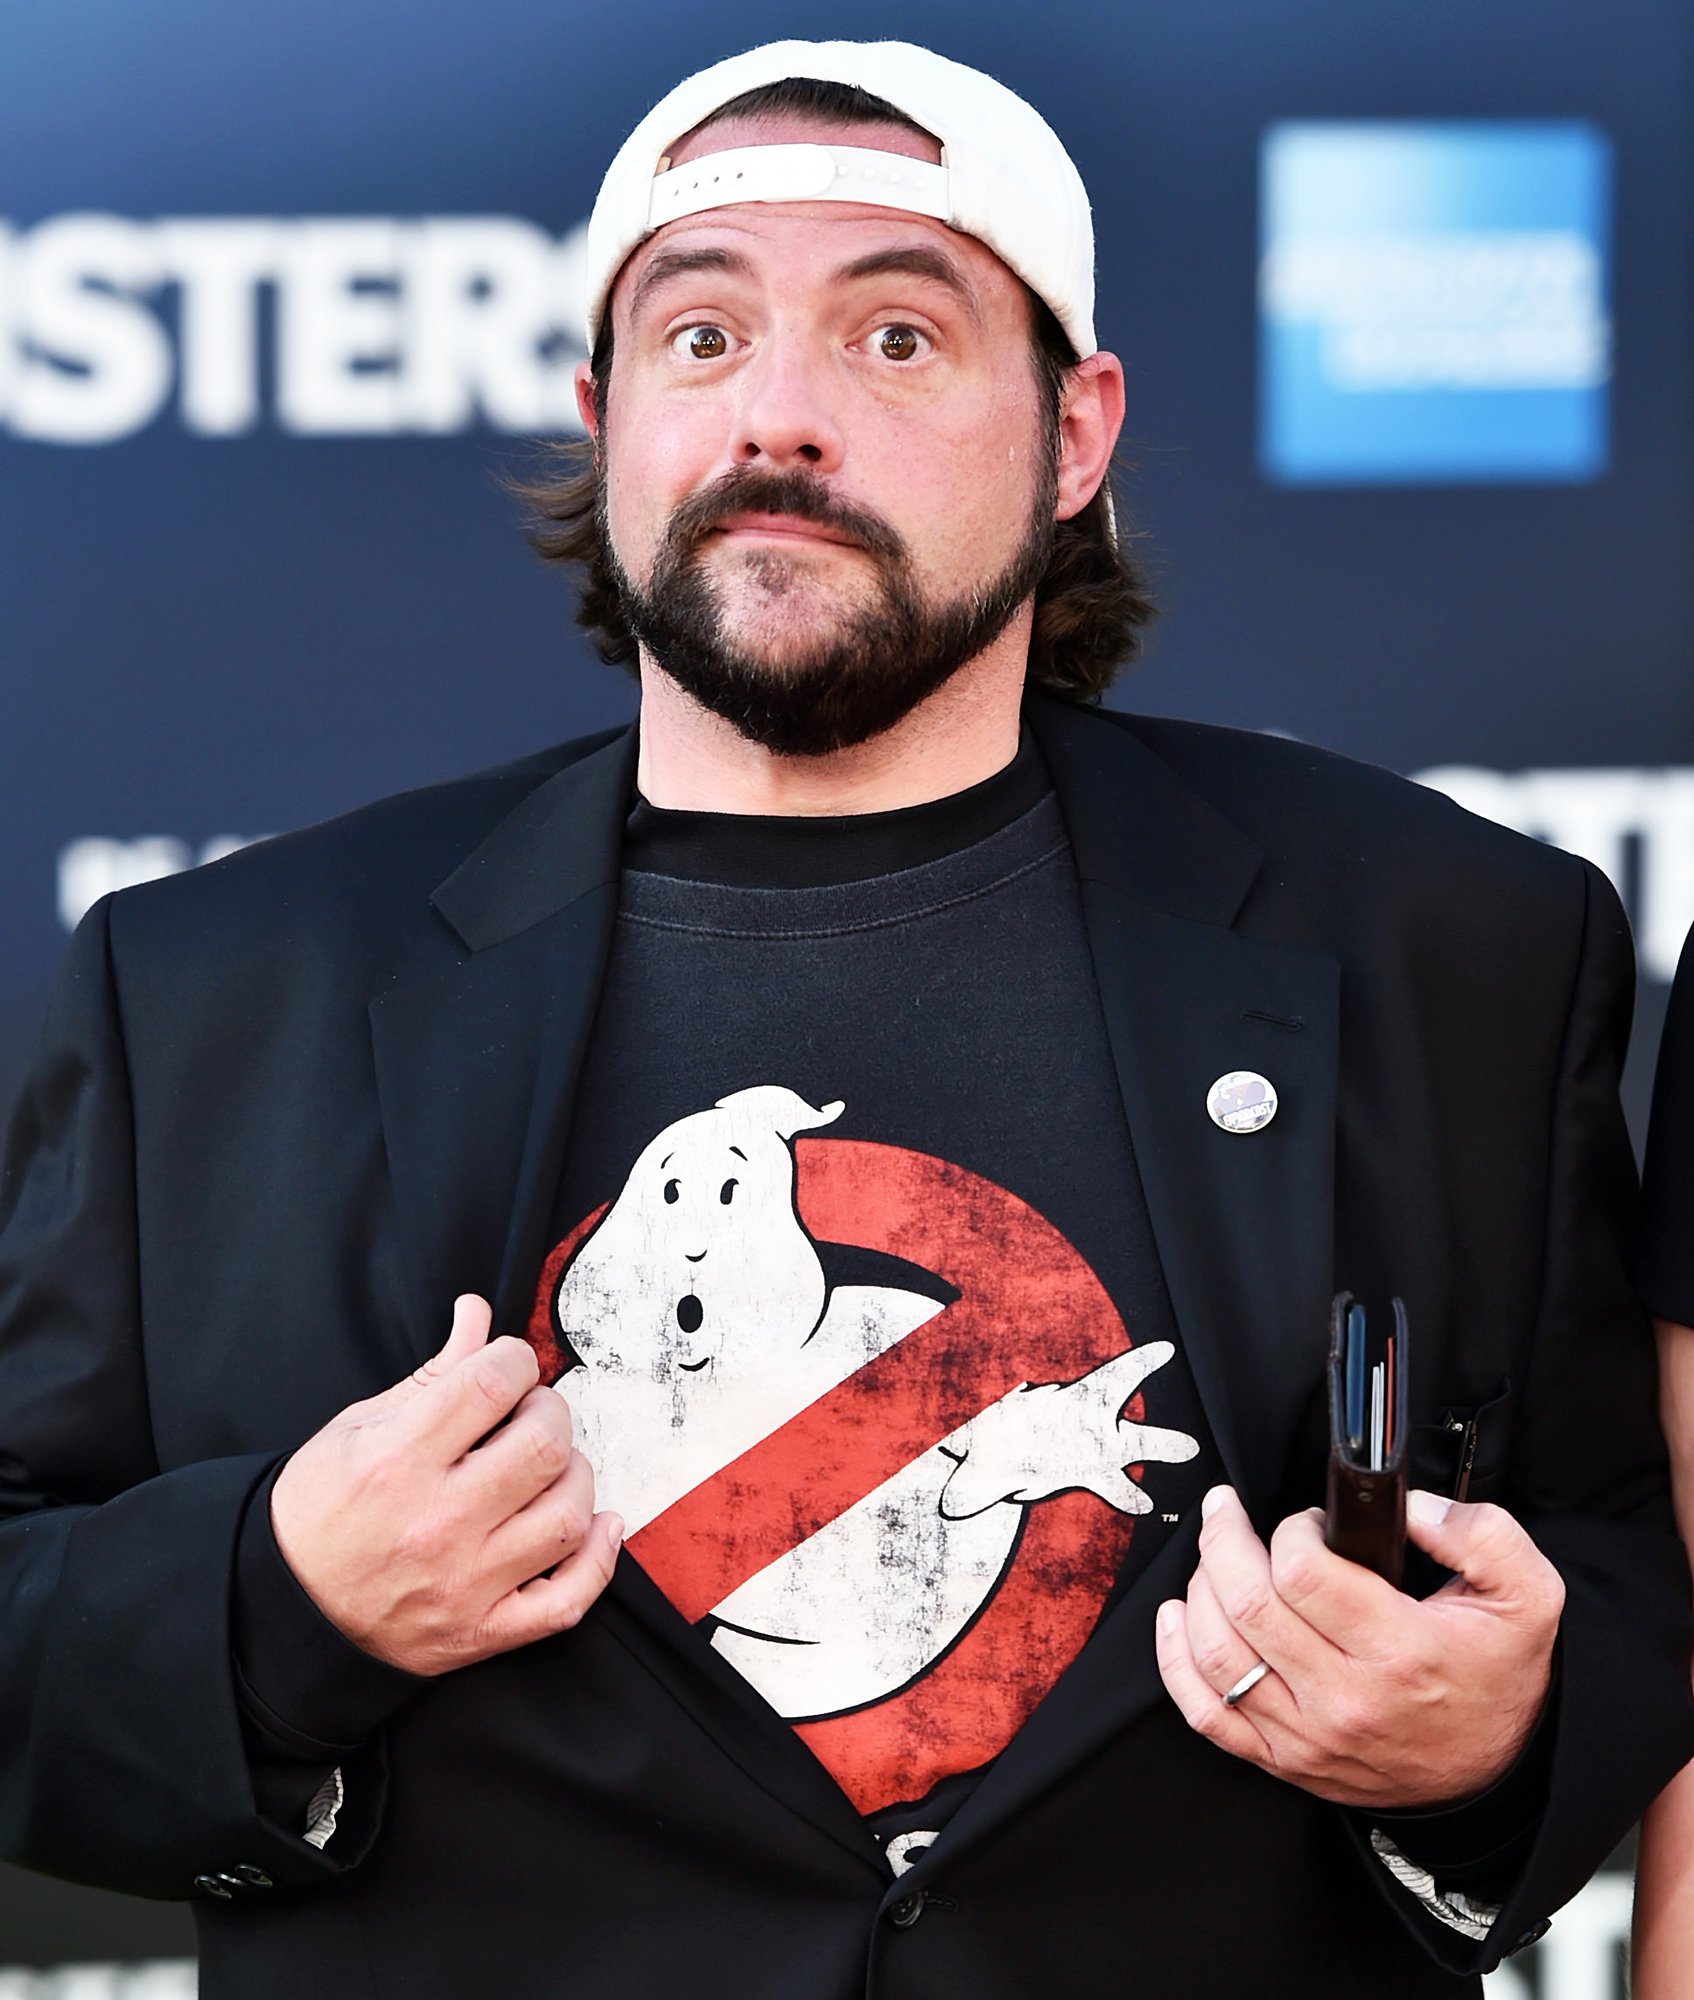 Kevin Smith 51 Pound Weight Loss Heart Attack